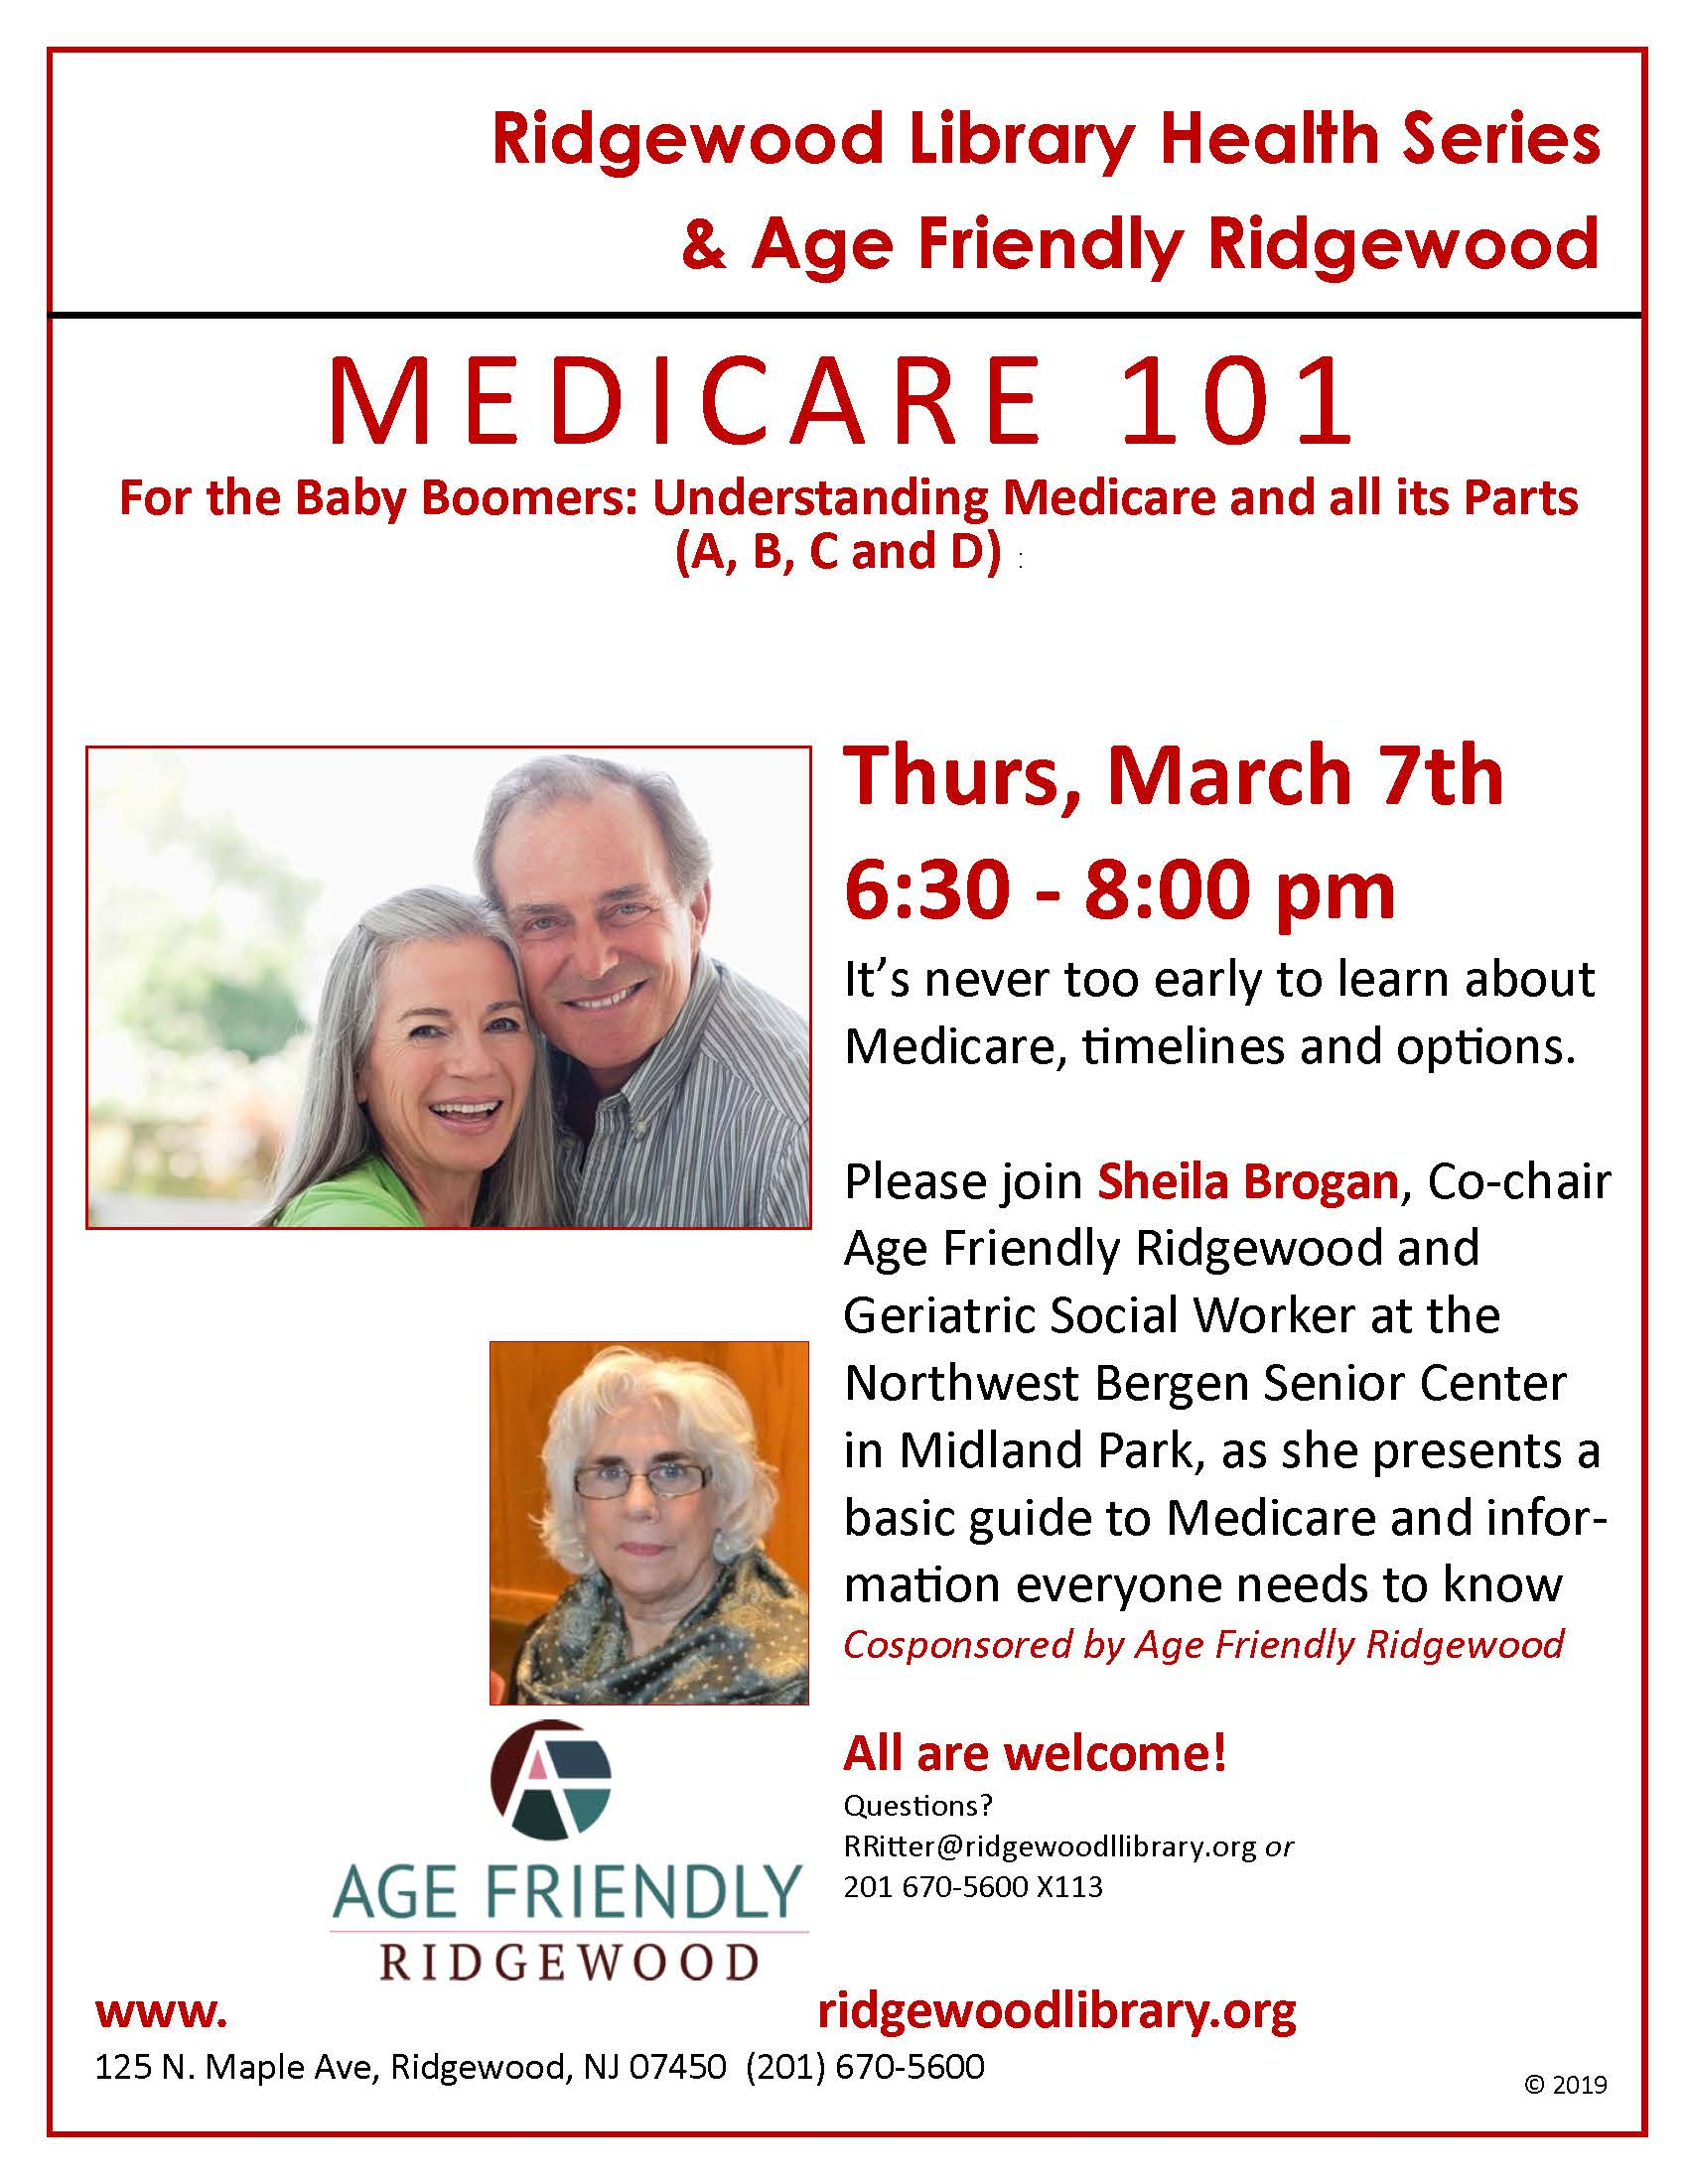 Medicare 101 for the Baby Boomer - Age Friendly Ridgewood